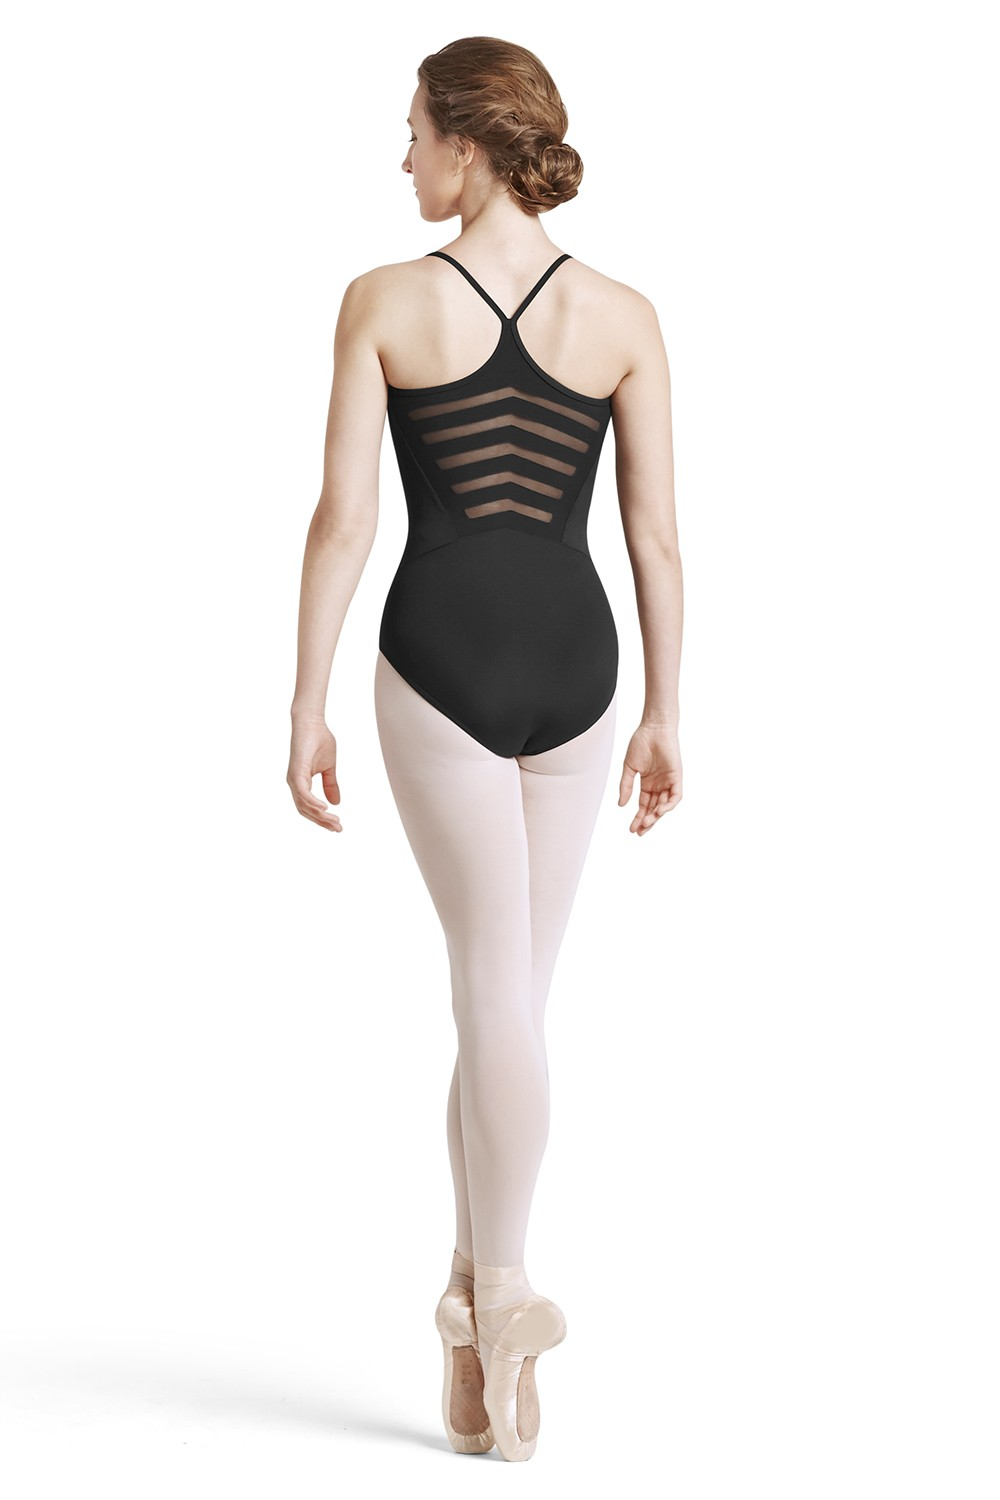 Ekani Women's Dance Leotards